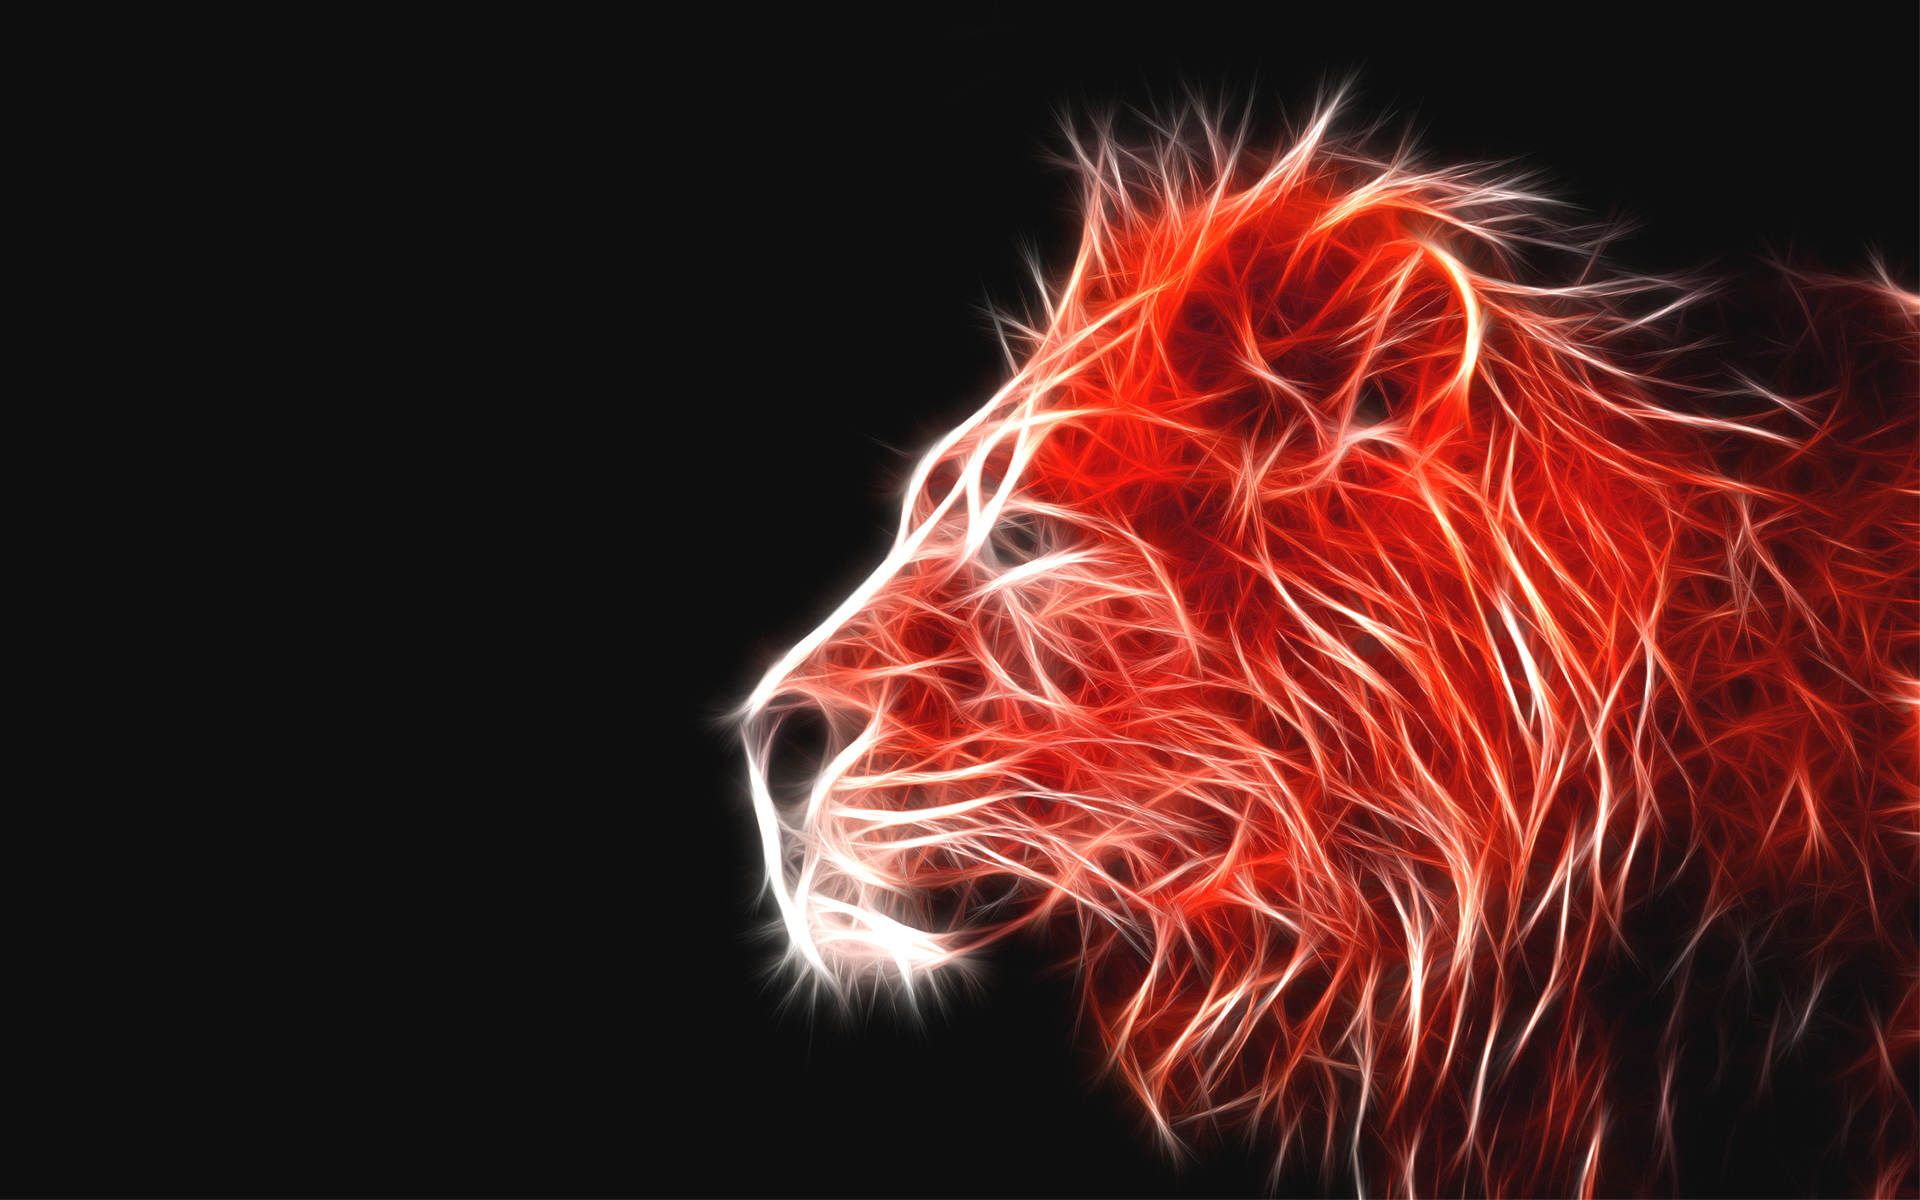 1920x1200 Fire Lion Wallpaper - Black And Red Lion, Hd Wallpapers ...